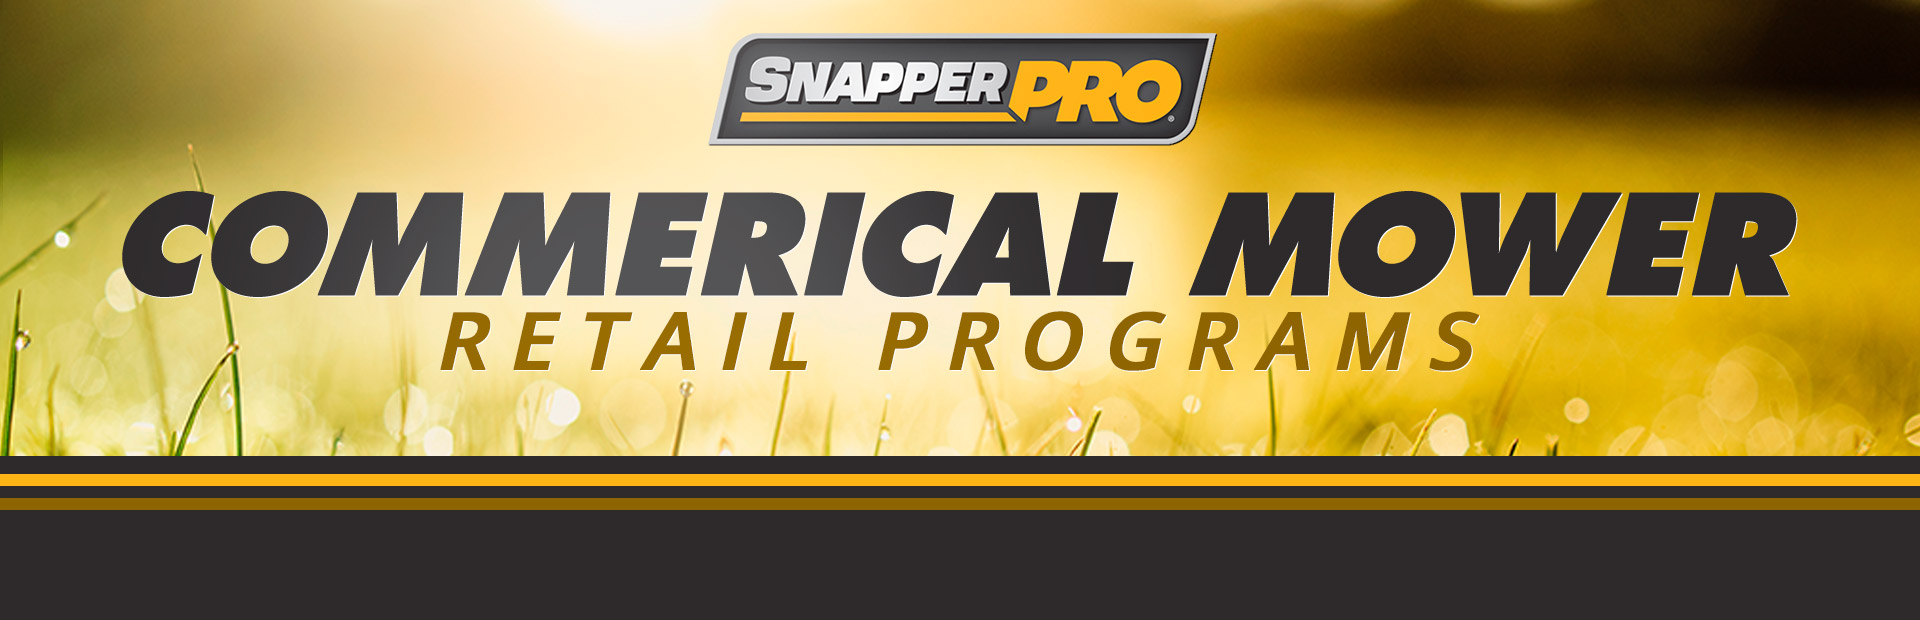 Snapper Pro: Commercial Mower Retail Programs